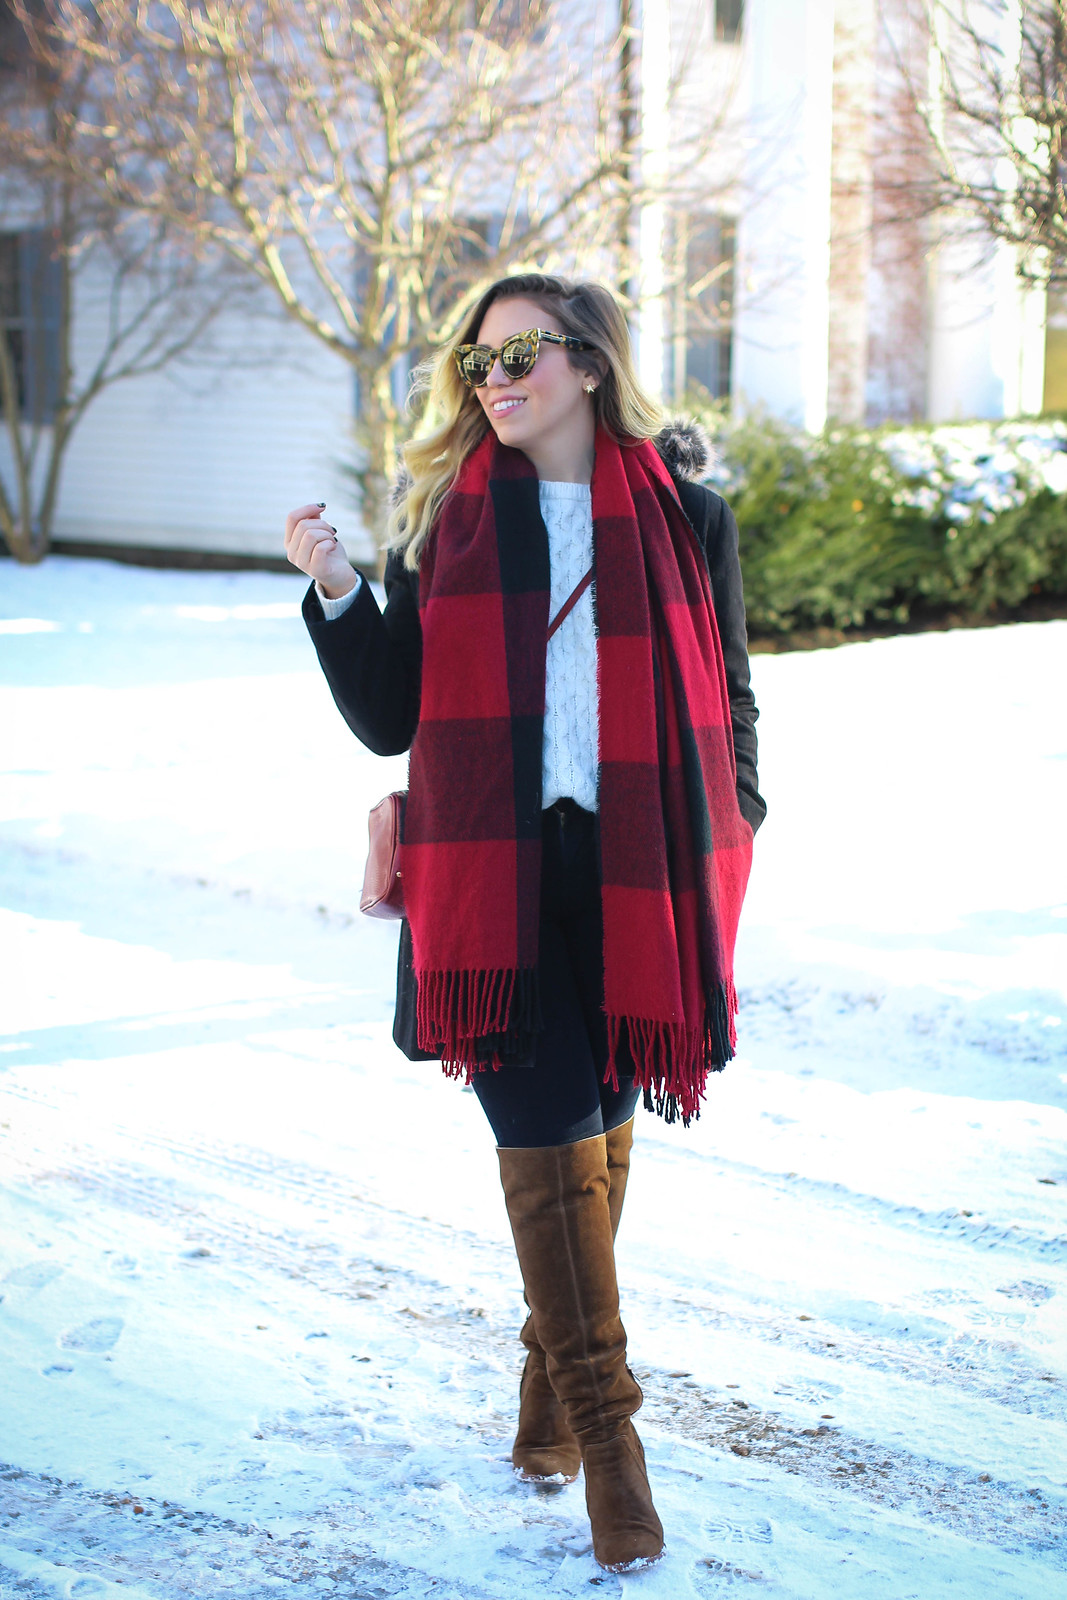 Casual Winter Women's Outfit | Red Plaid Scarf, J Brand Maria High Rise Jeans, Vince Camuto Suede OTK Boots.